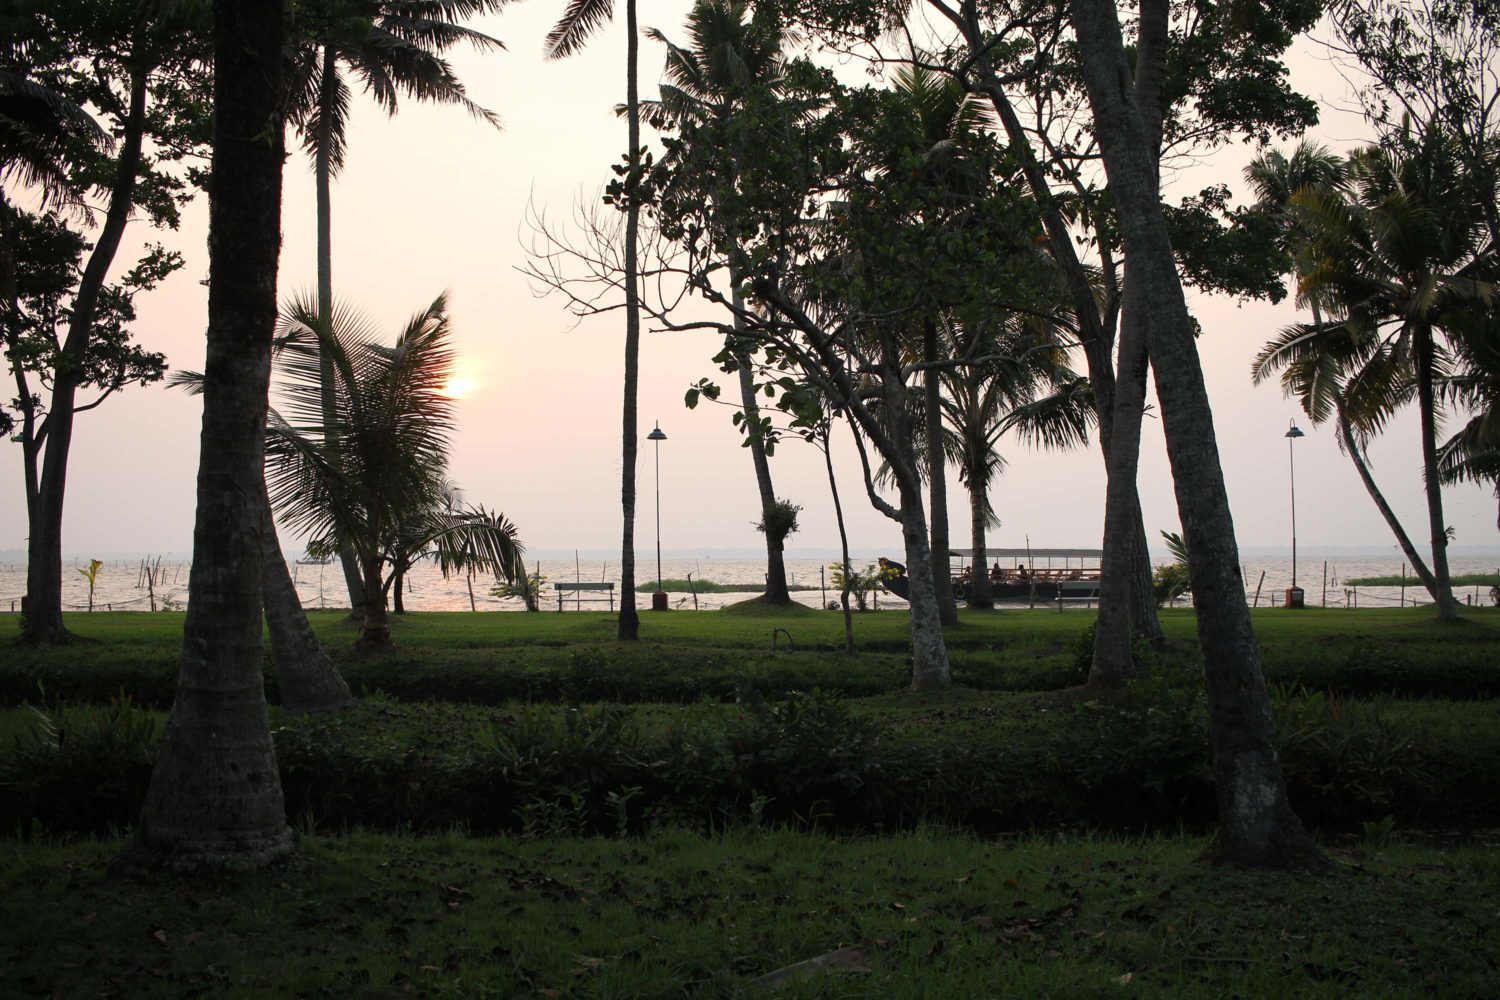 kerala backwaters Kumarakom